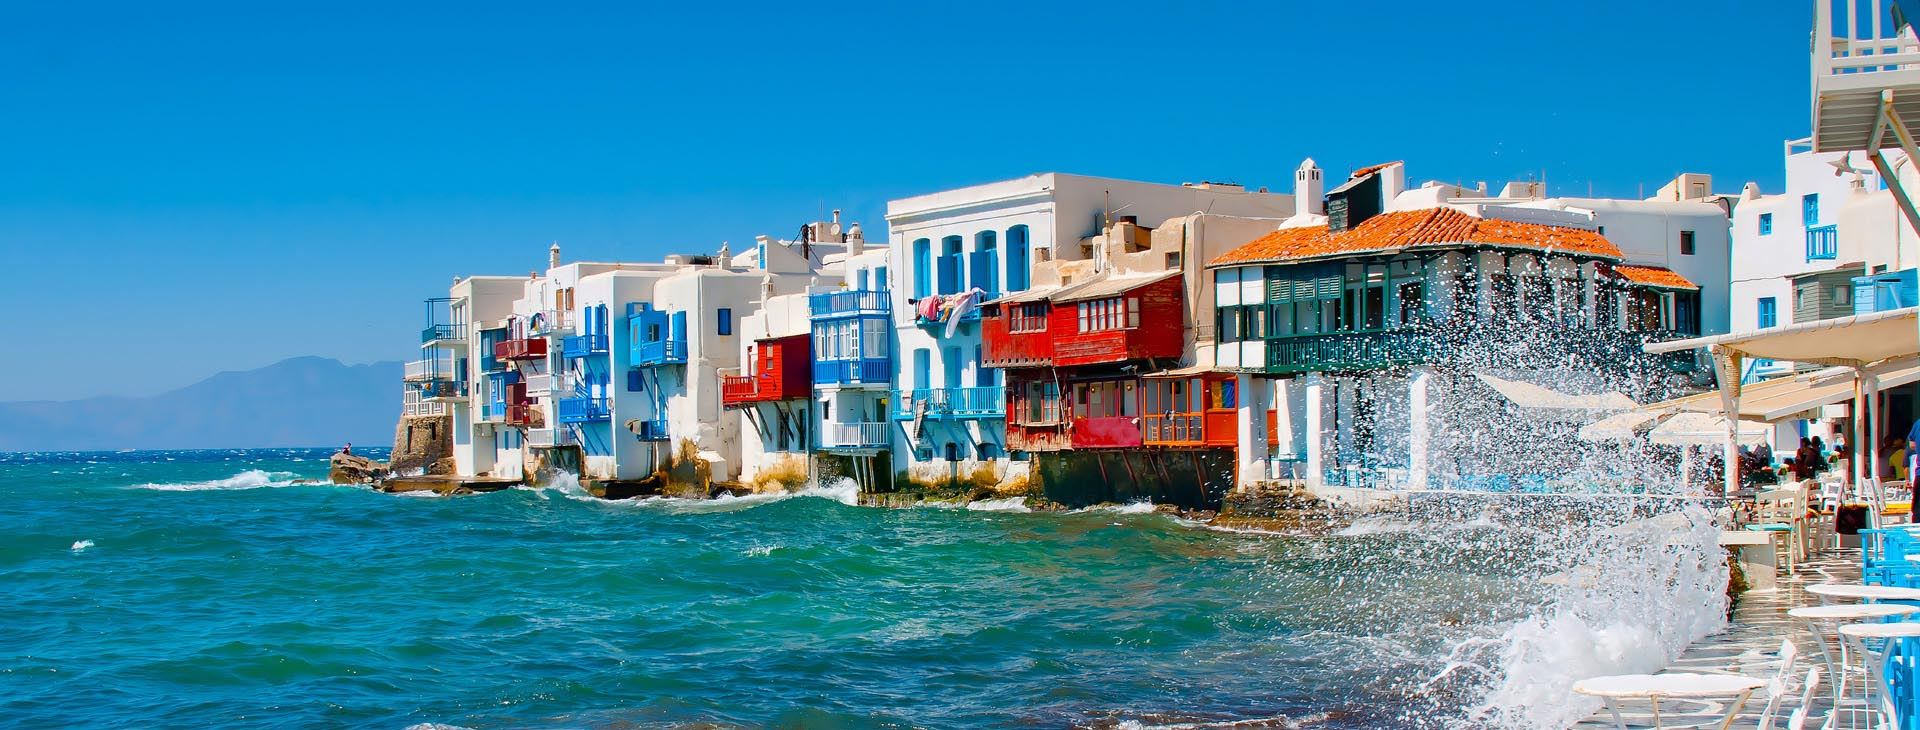 """Little Venice"" at Mykonos island"